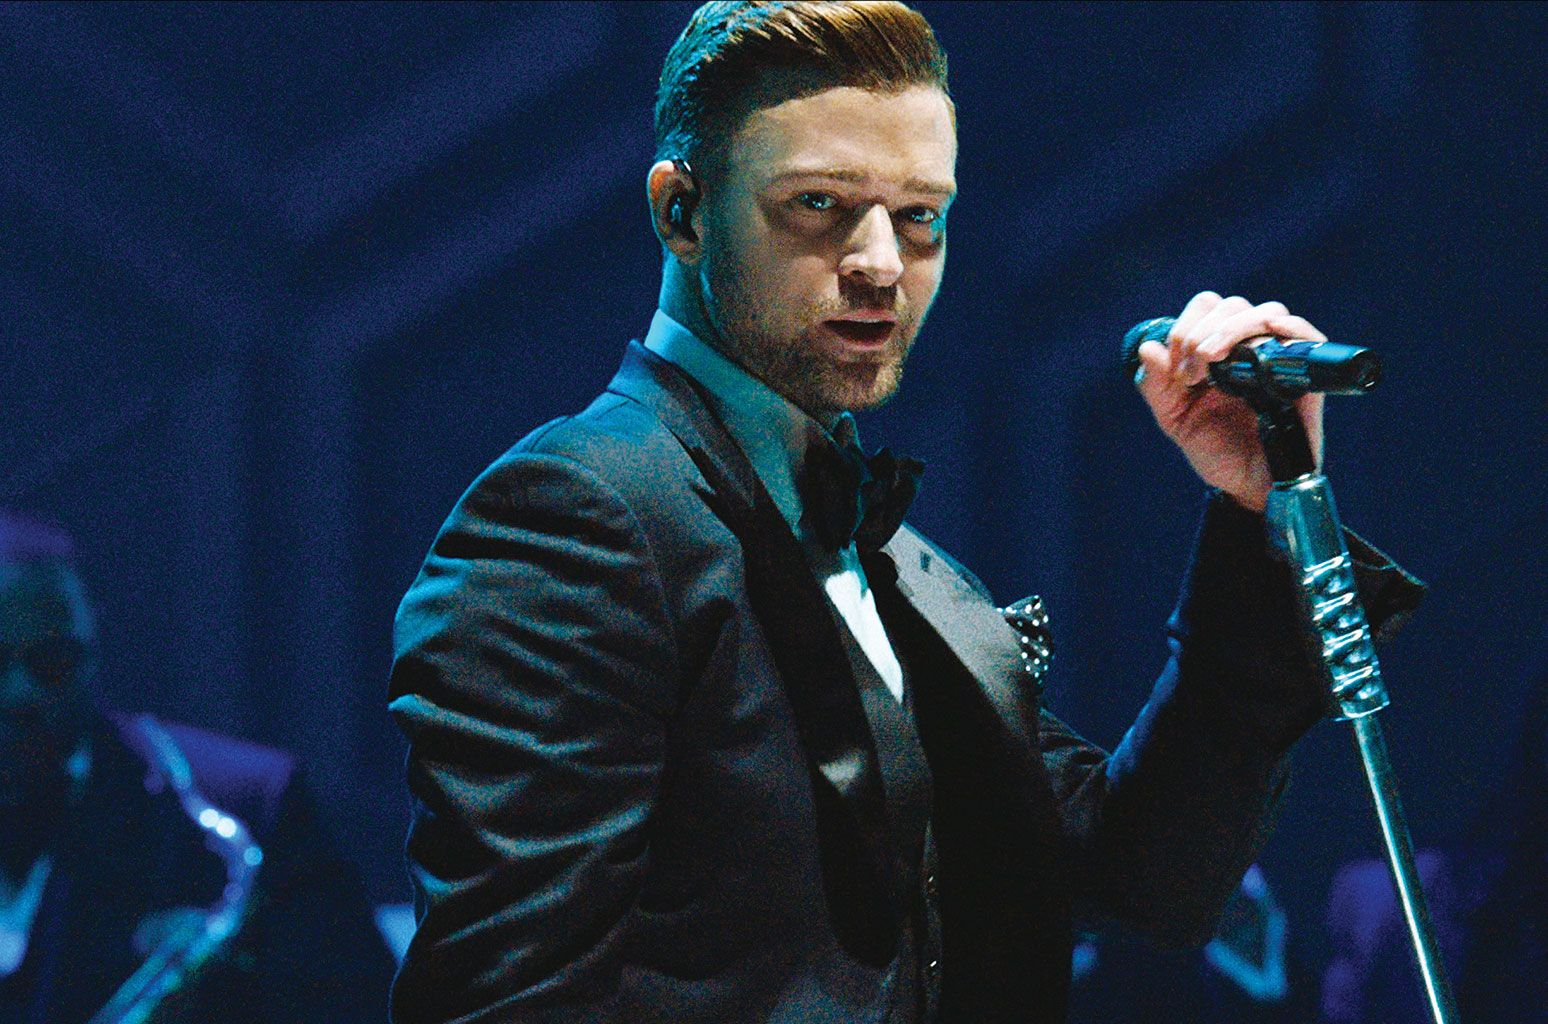 Here's a list of the best Justin Timberlake songs remixed for your listening pleasure.